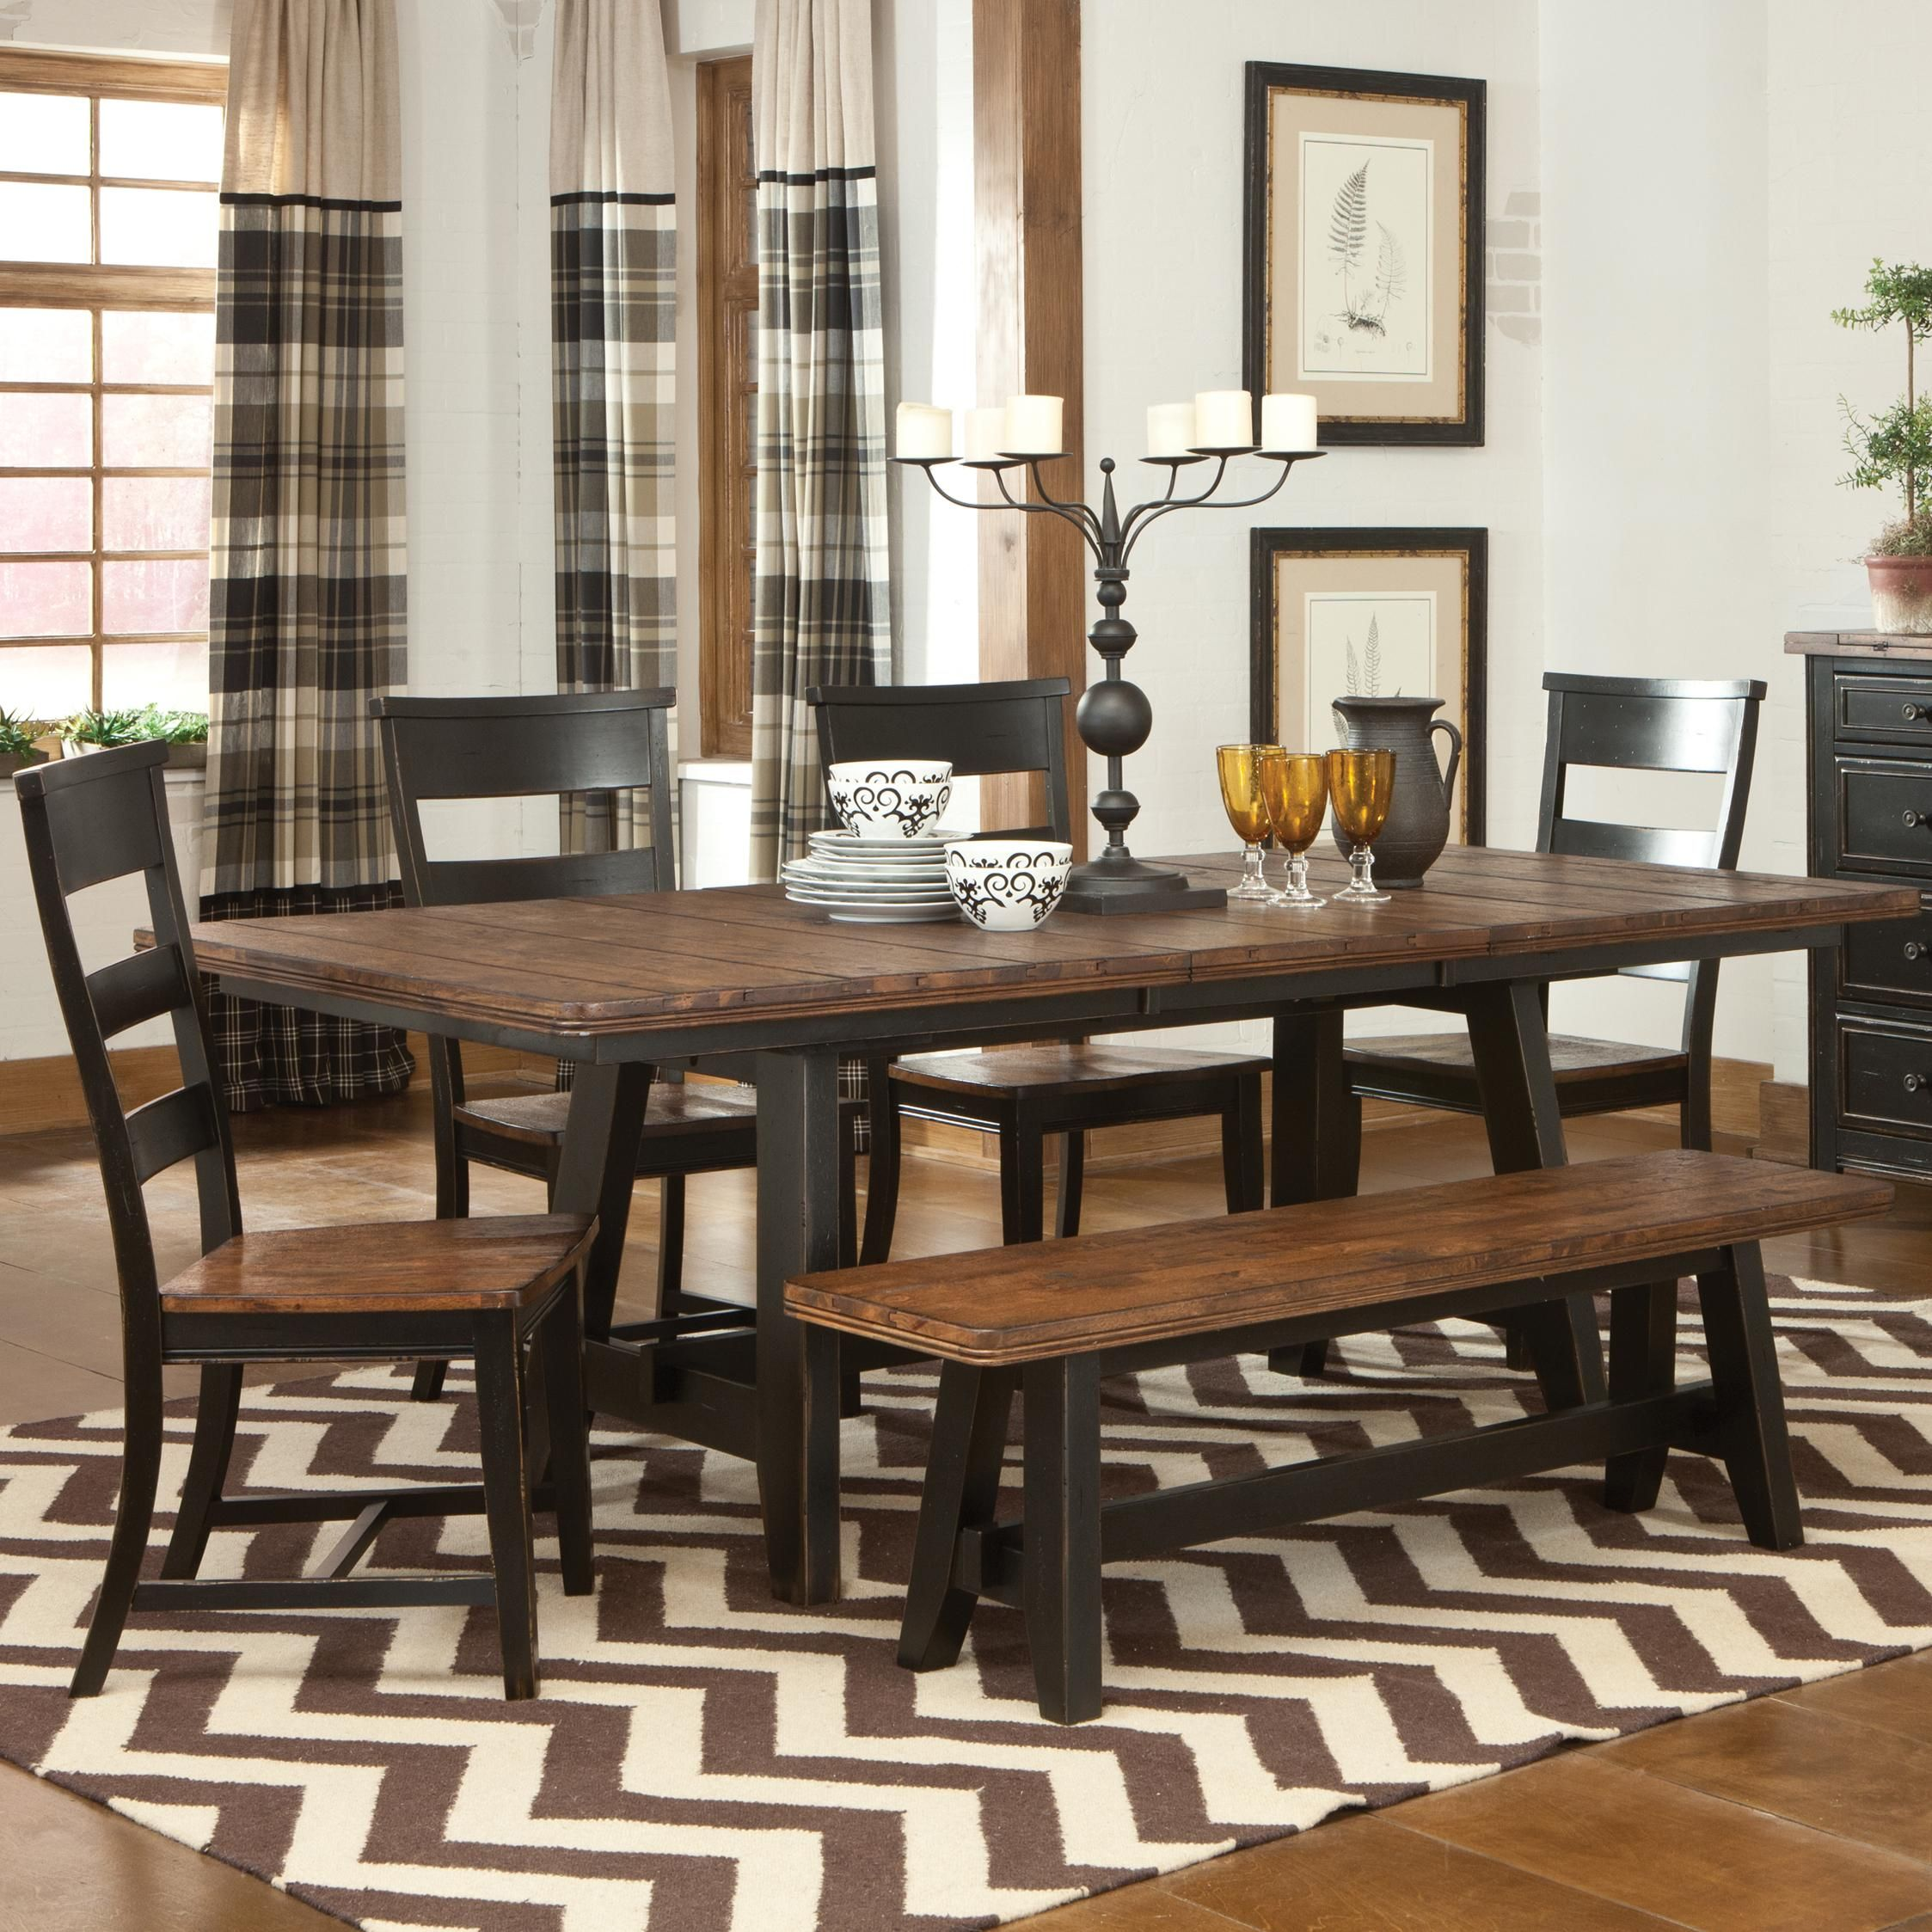 Trestle Dining Table Set Part - 27: Intercon Winchester 6 Piece Trestle Table And Ladder Back Chair Set With  Backless Dining Bench - Godby Home Furnishings - Dining 5 Piece Set.